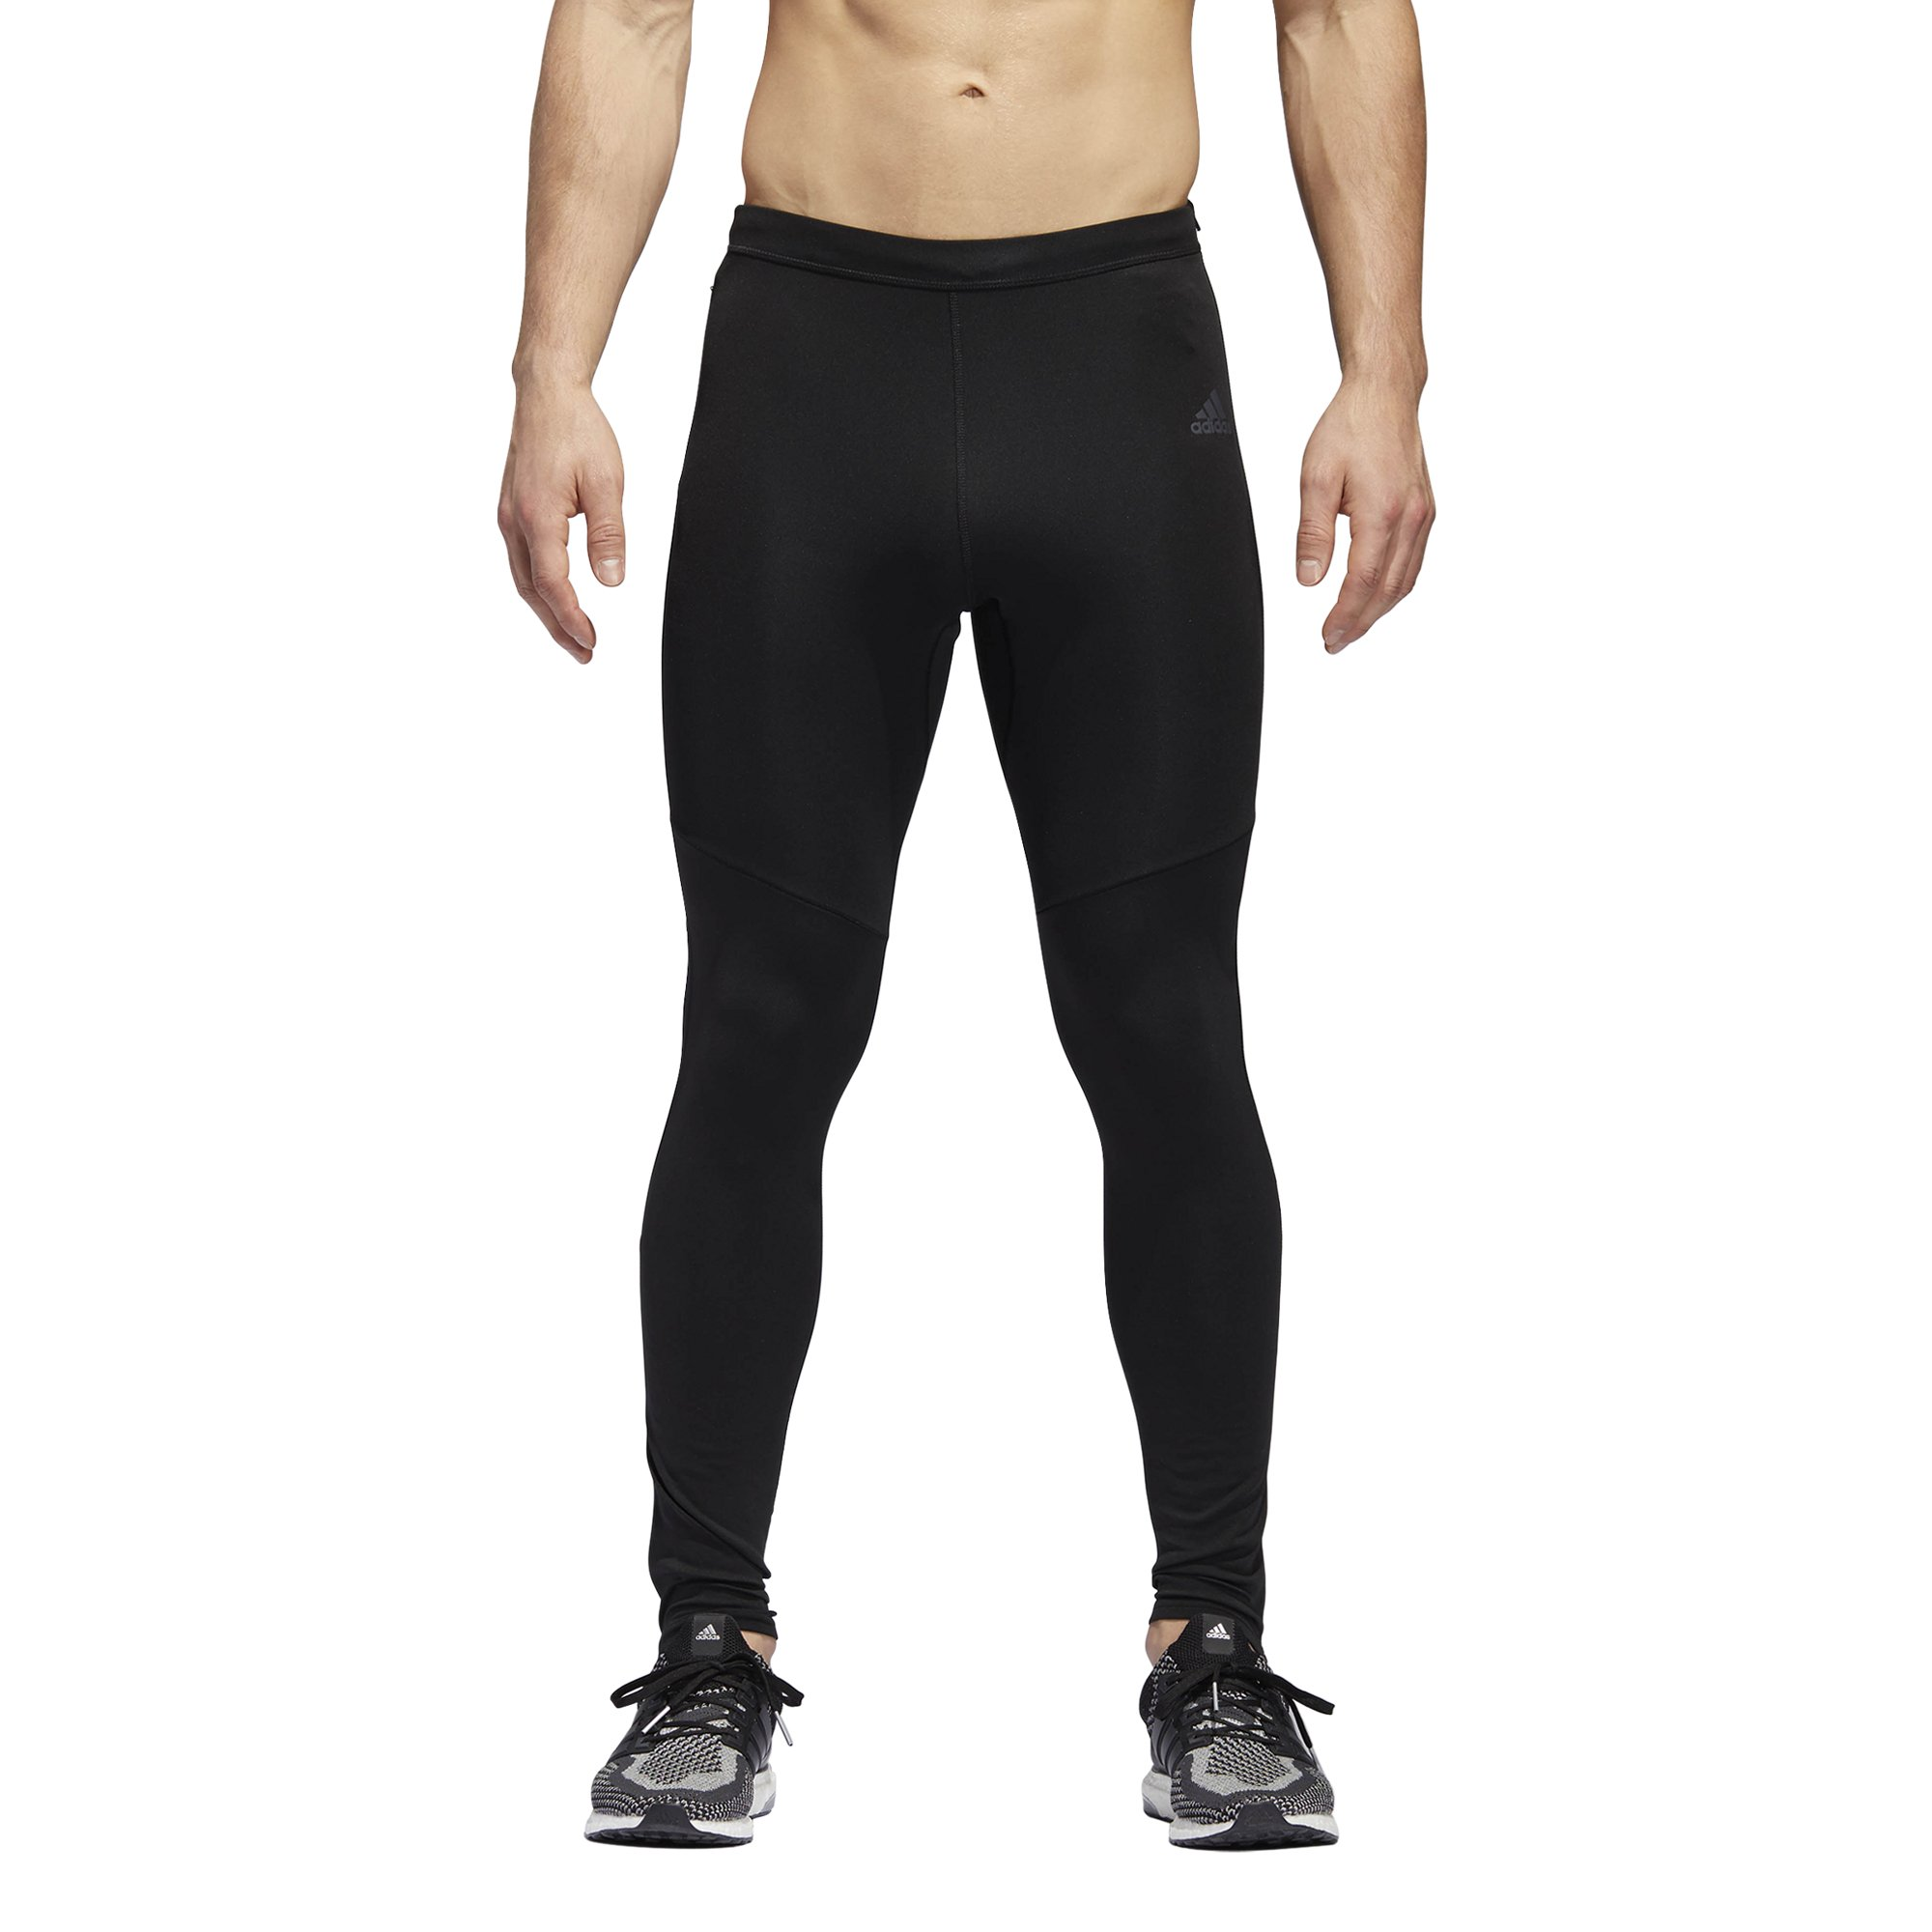 adidas Men's Response Long Tights, Black, Small by adidas (Image #1)